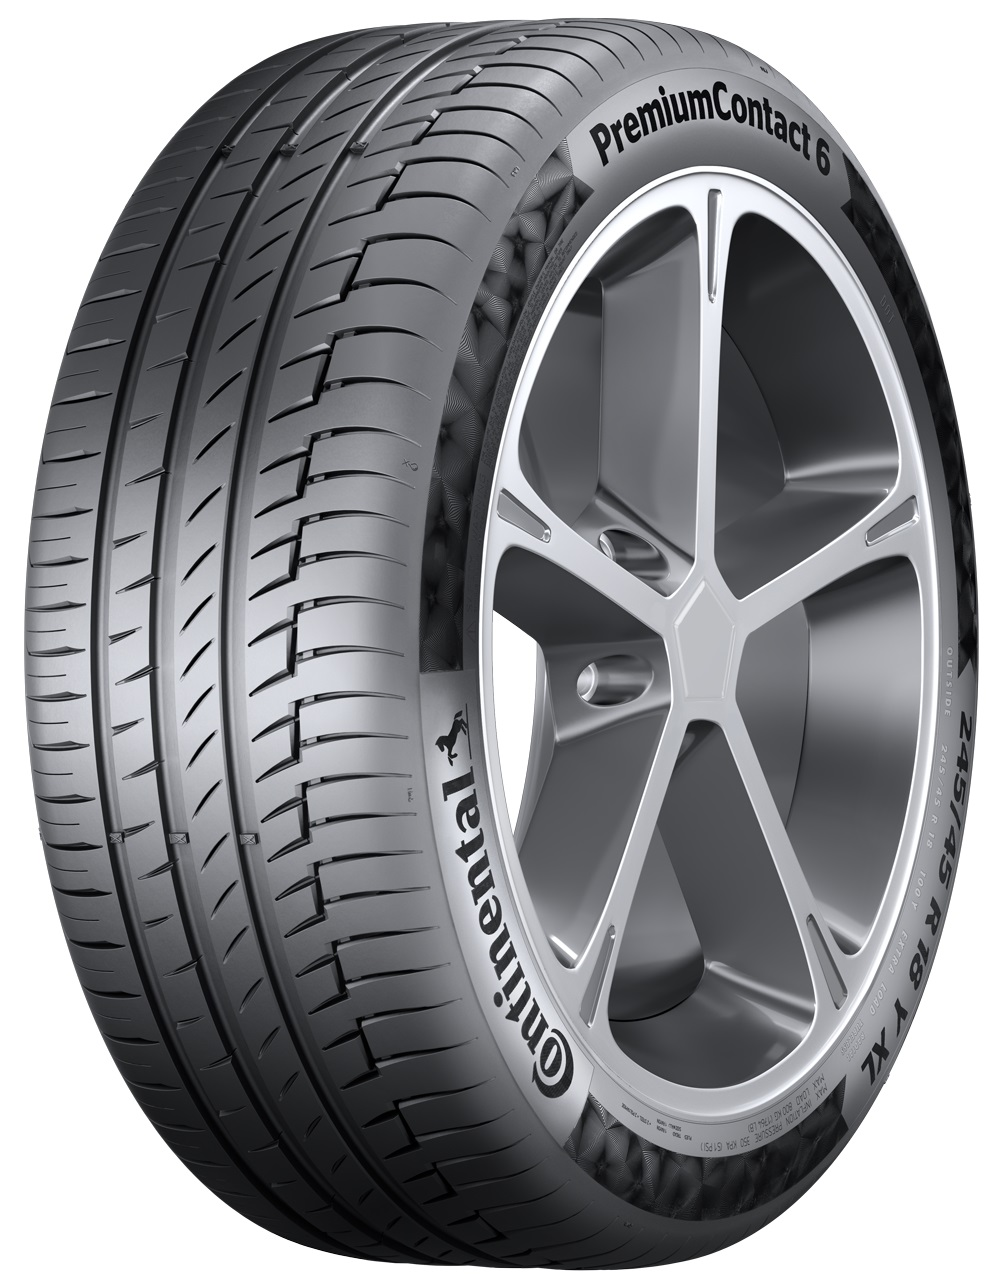 Anvelopa vara CONTINENTAL PREMIUM CONTACT 6 235/45 R17 94Y